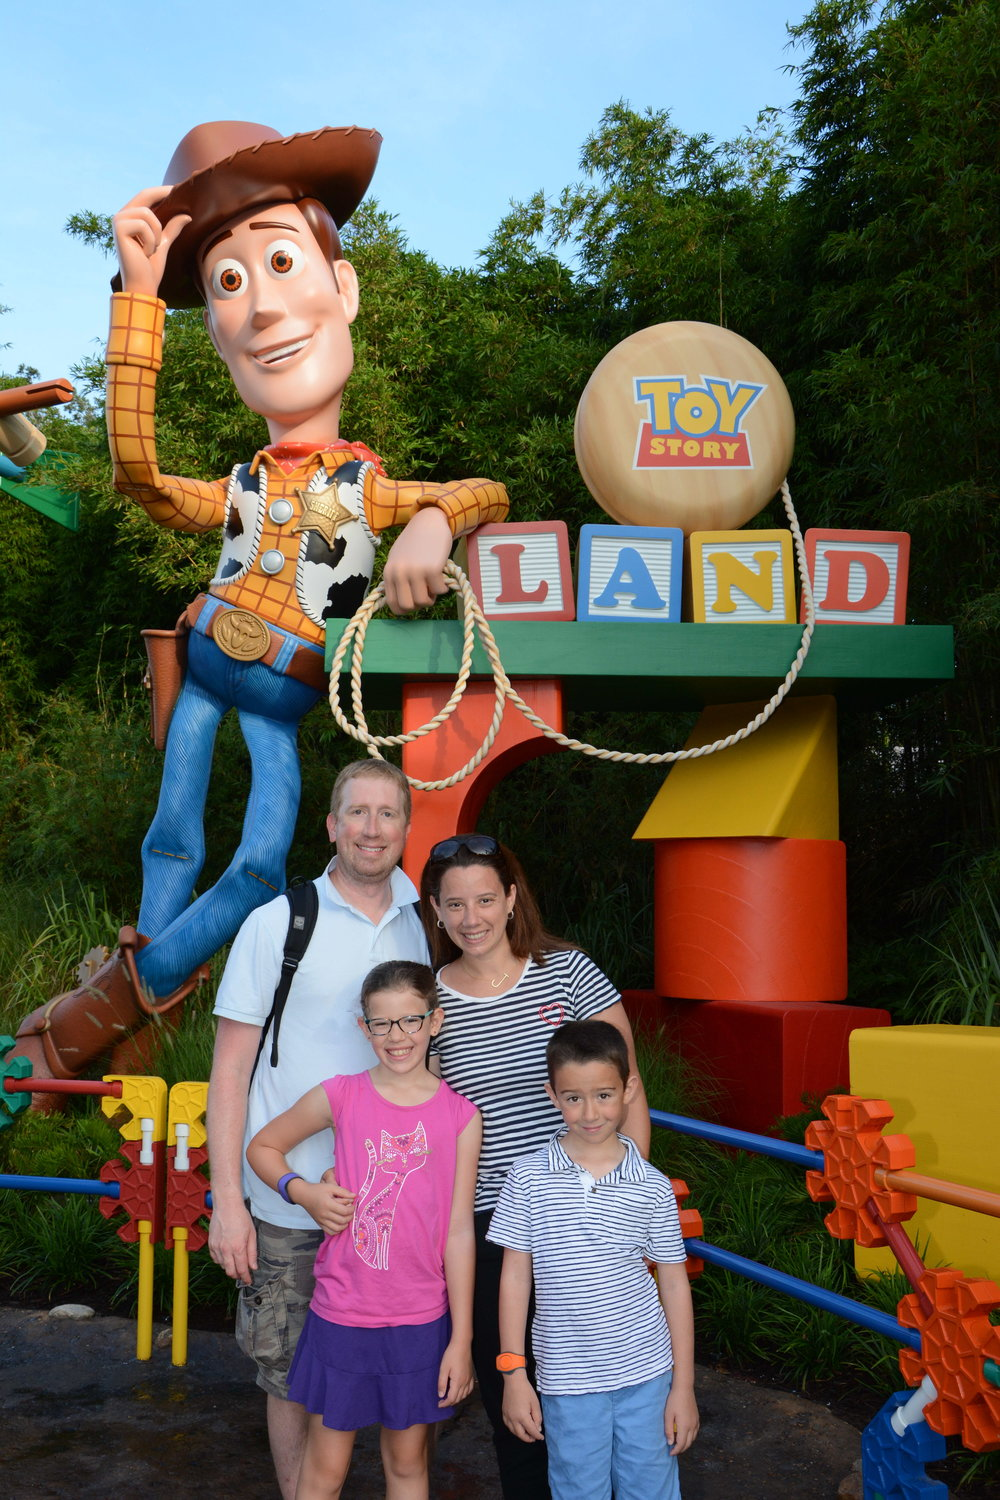 STUDIO_TOYSTORYLANDICON_20180712_412418709341.jpg